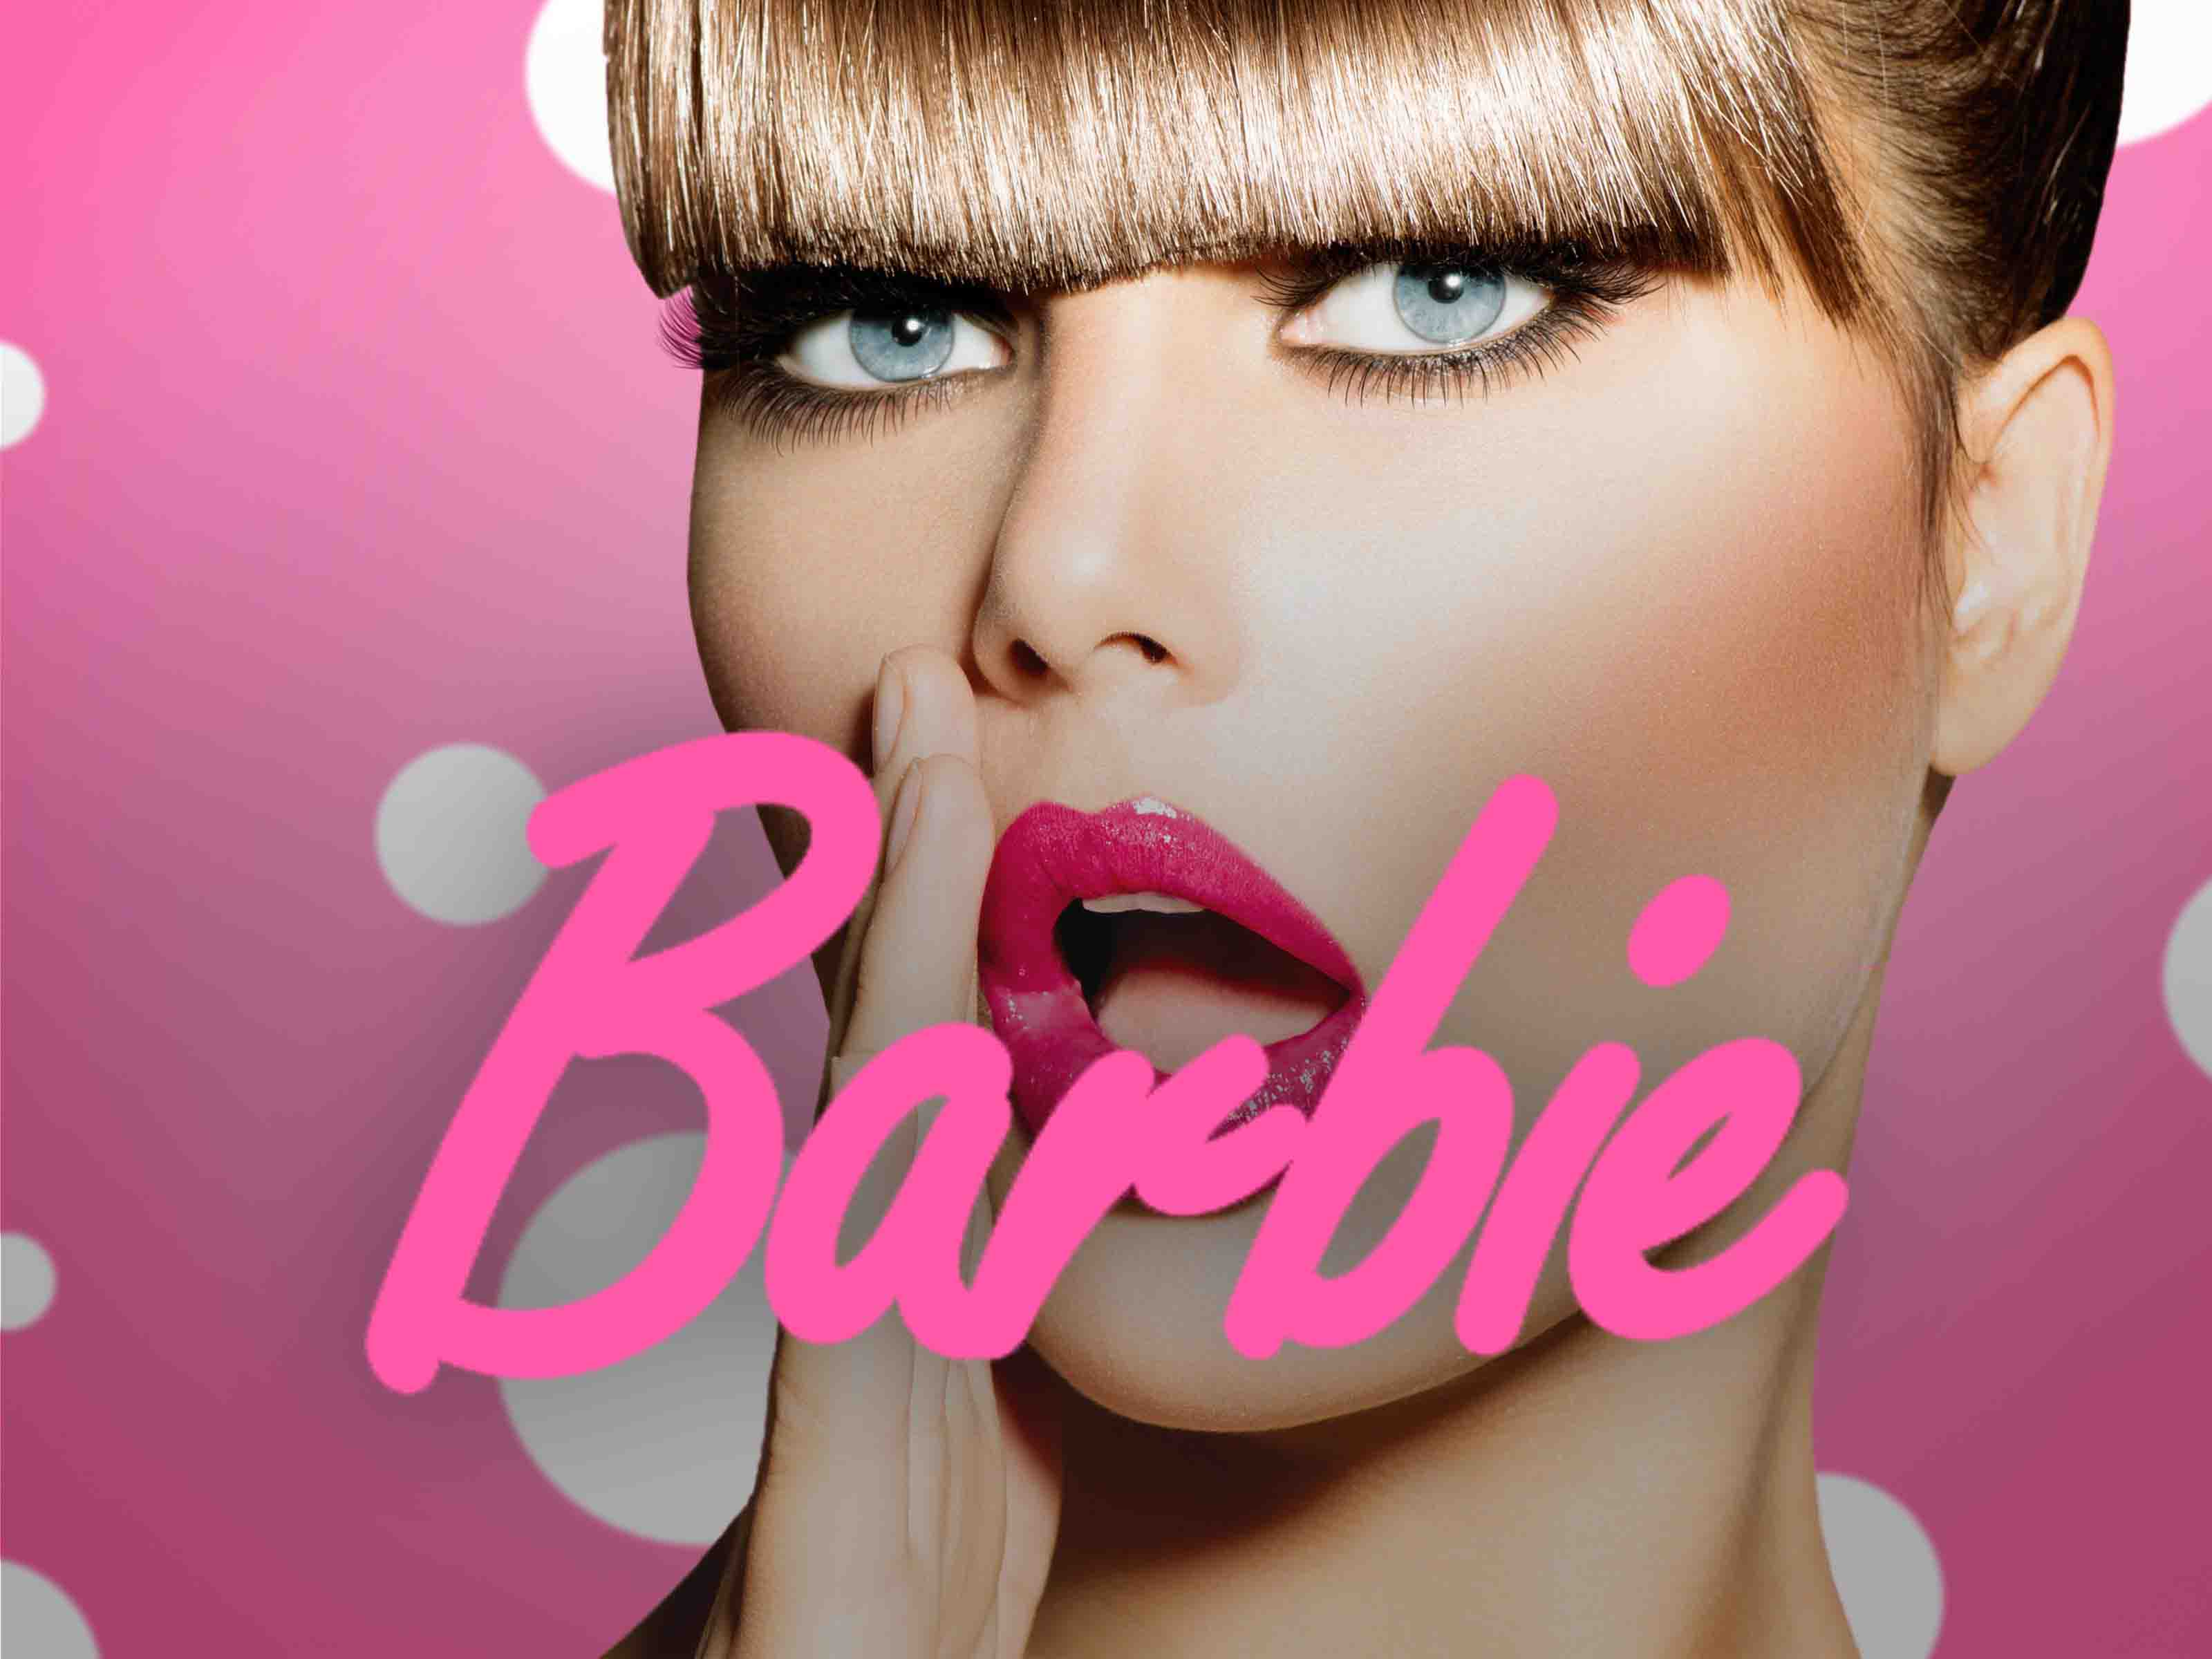 Hen Party Themes - Barbie